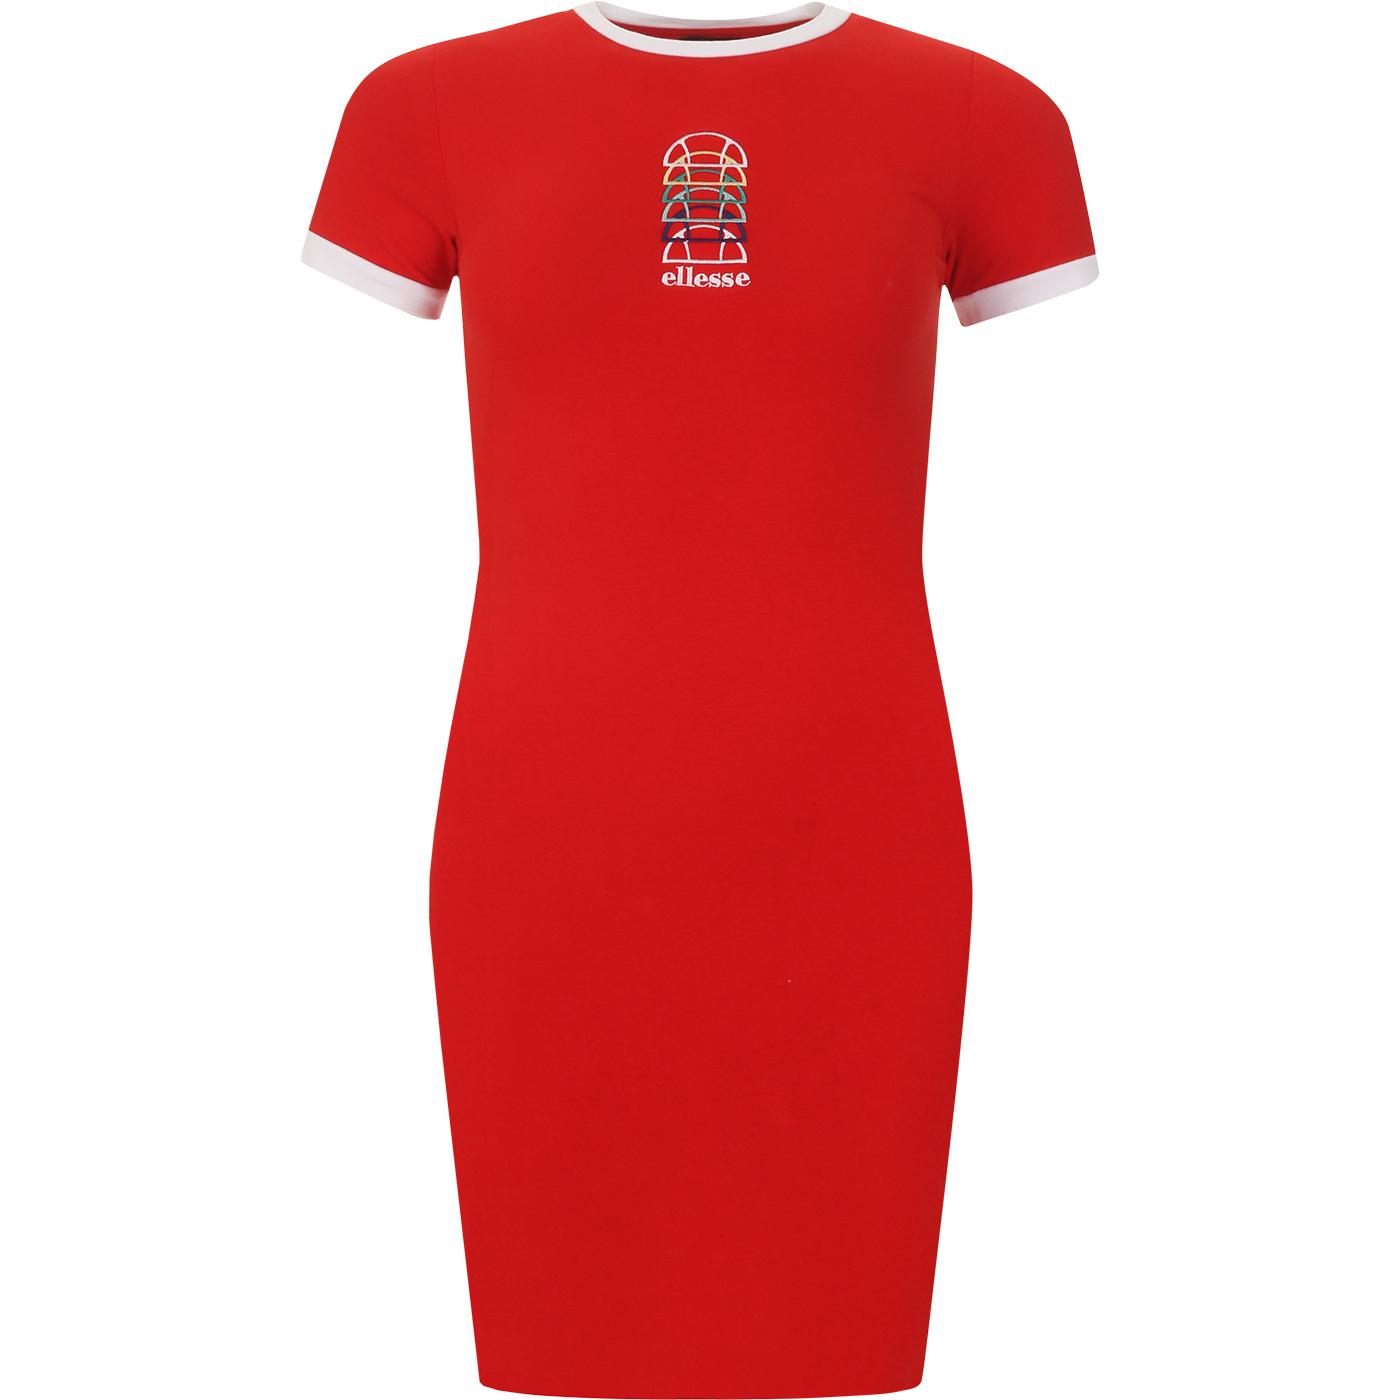 Ninetta ELLESSE Retro Slim Ringer Trim Dress (Red)